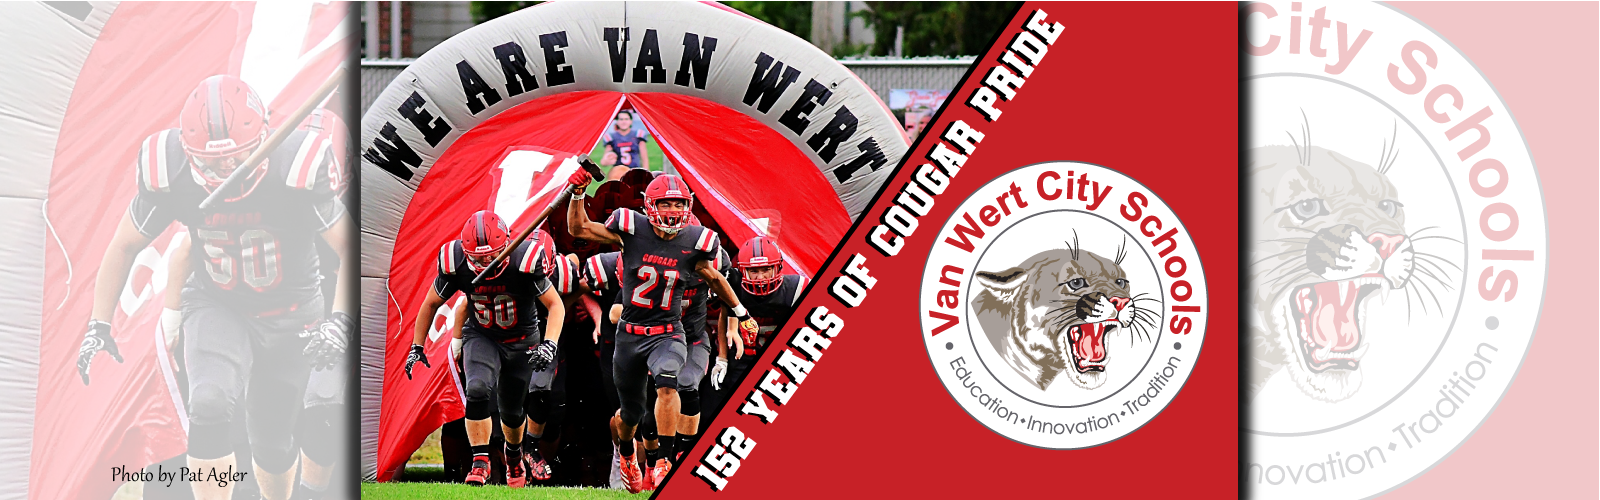 152 Years of Cougar Pride with VWCS circle logo and photo of the football team running out of tunnel before a game